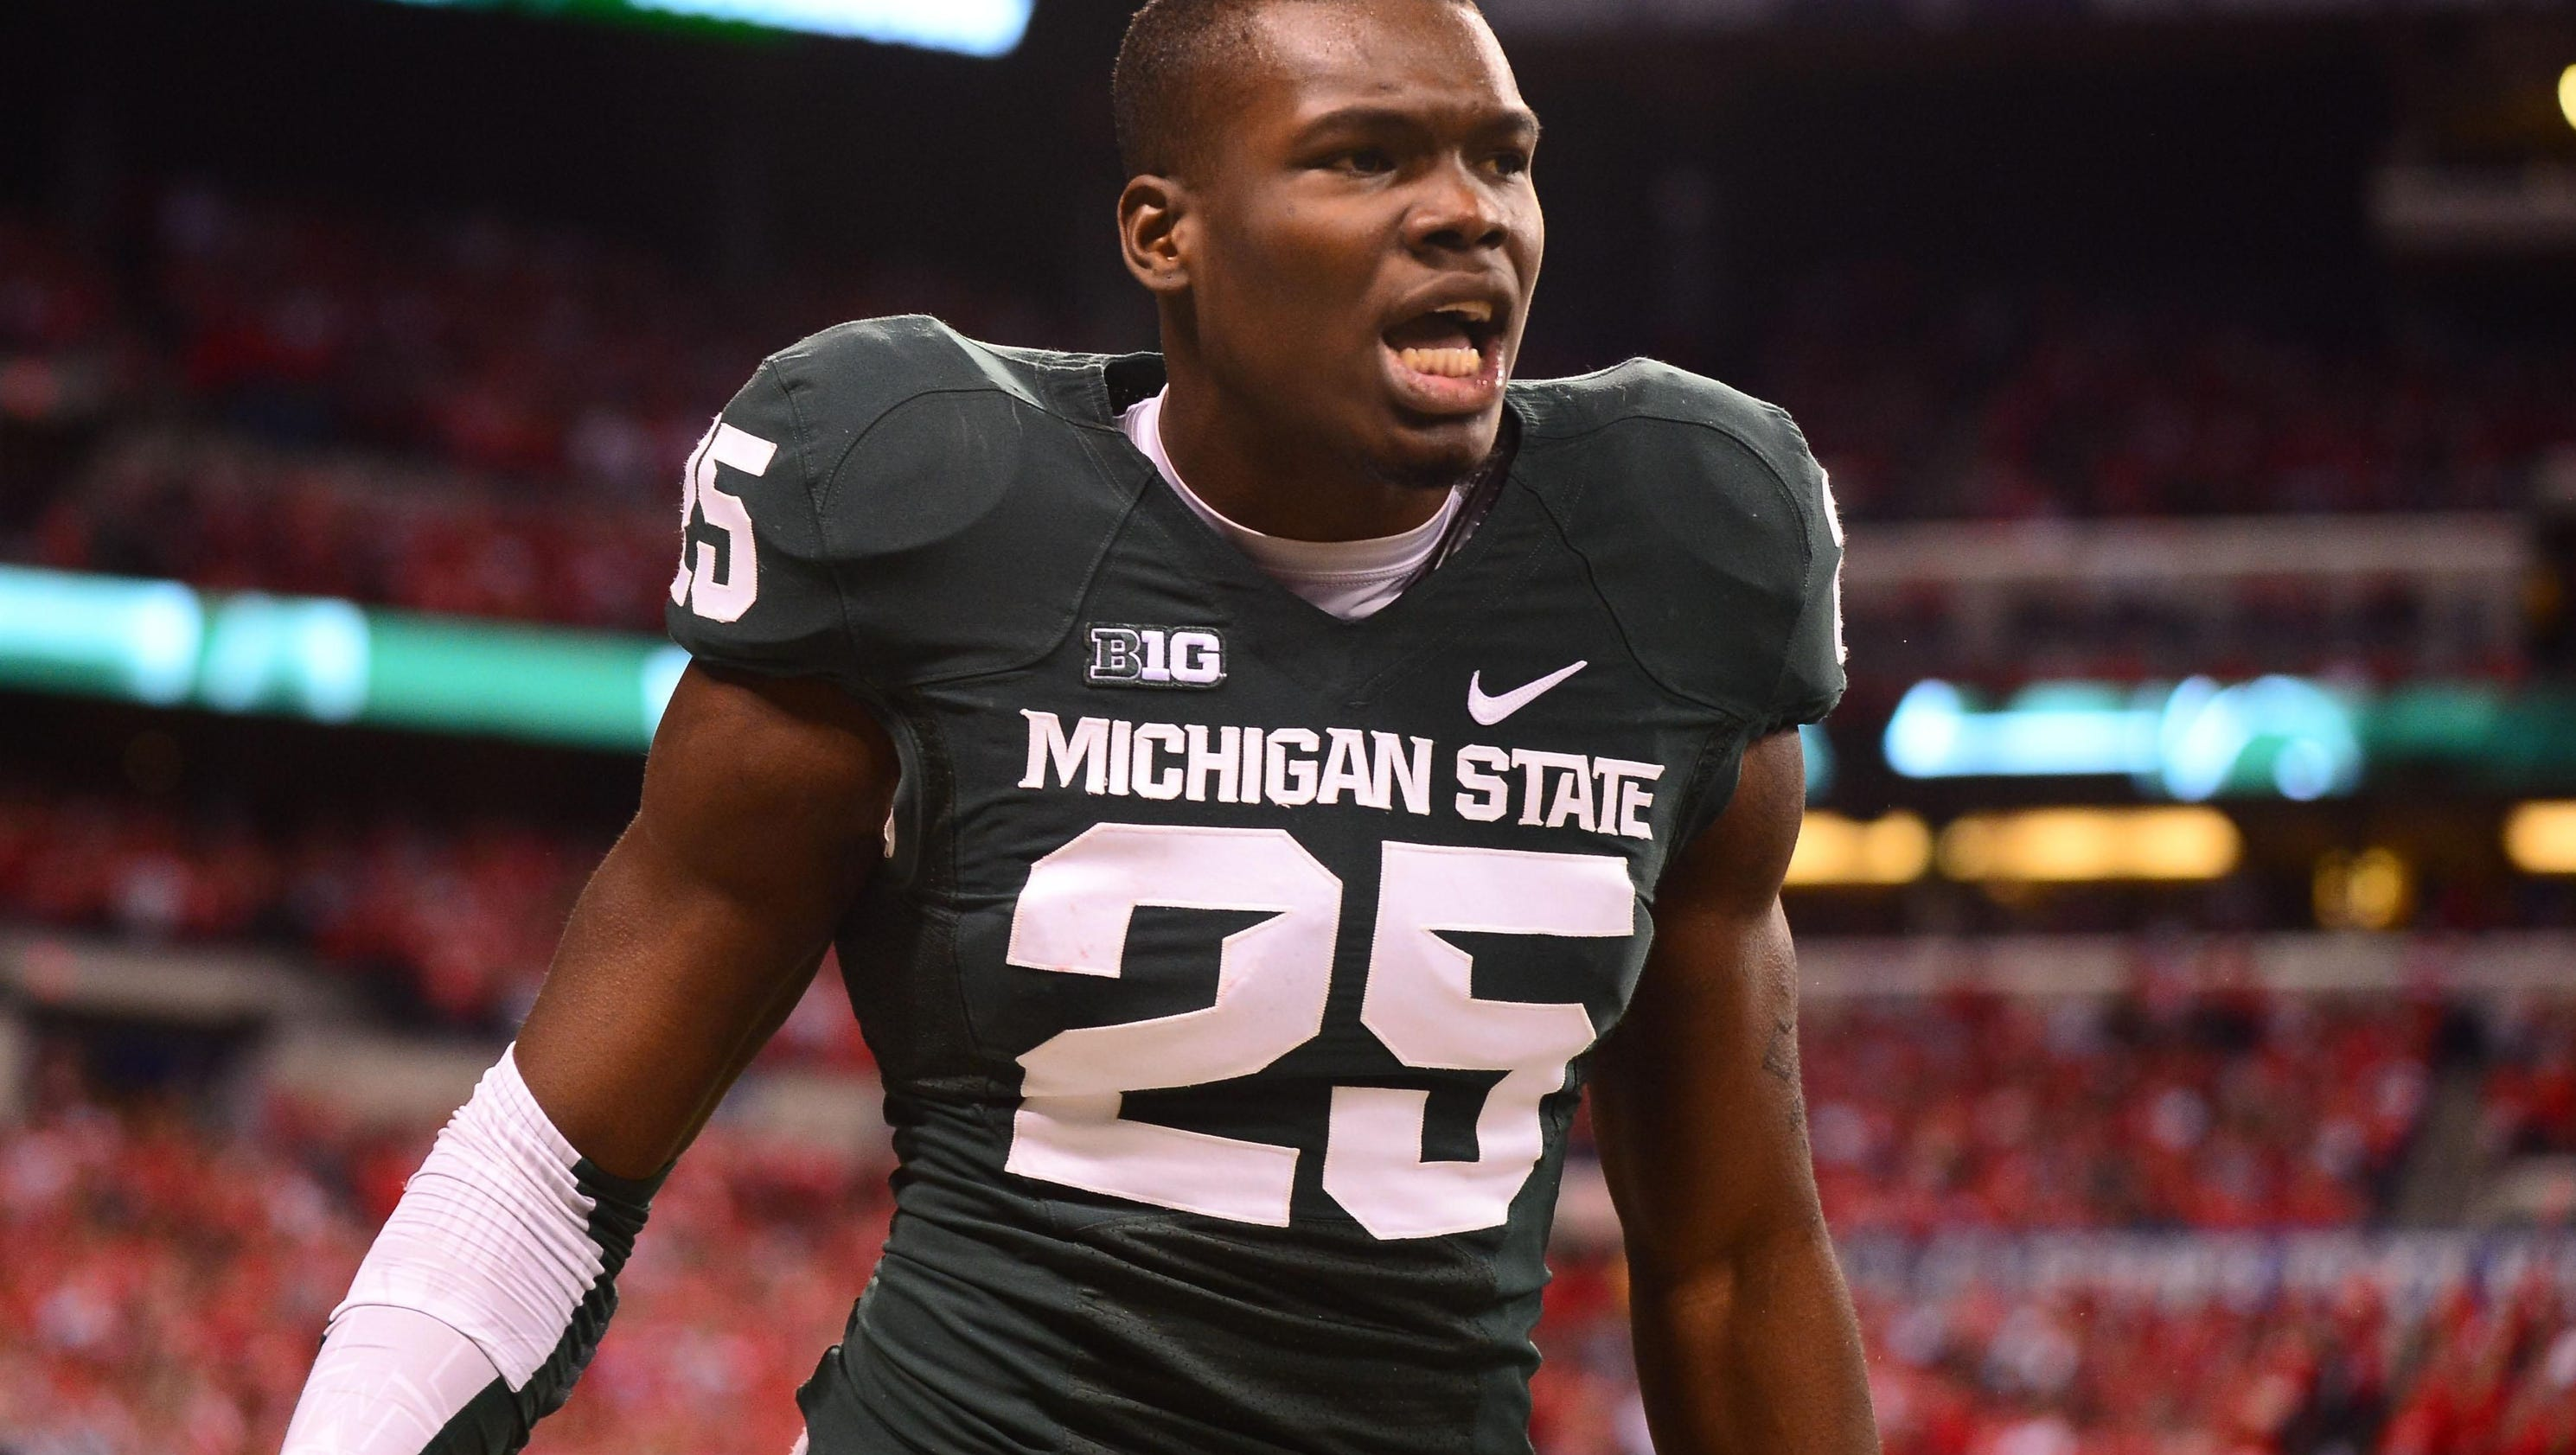 Ex-football player Keith Mumphery sues Michigan State, claims its actions ended NFL career